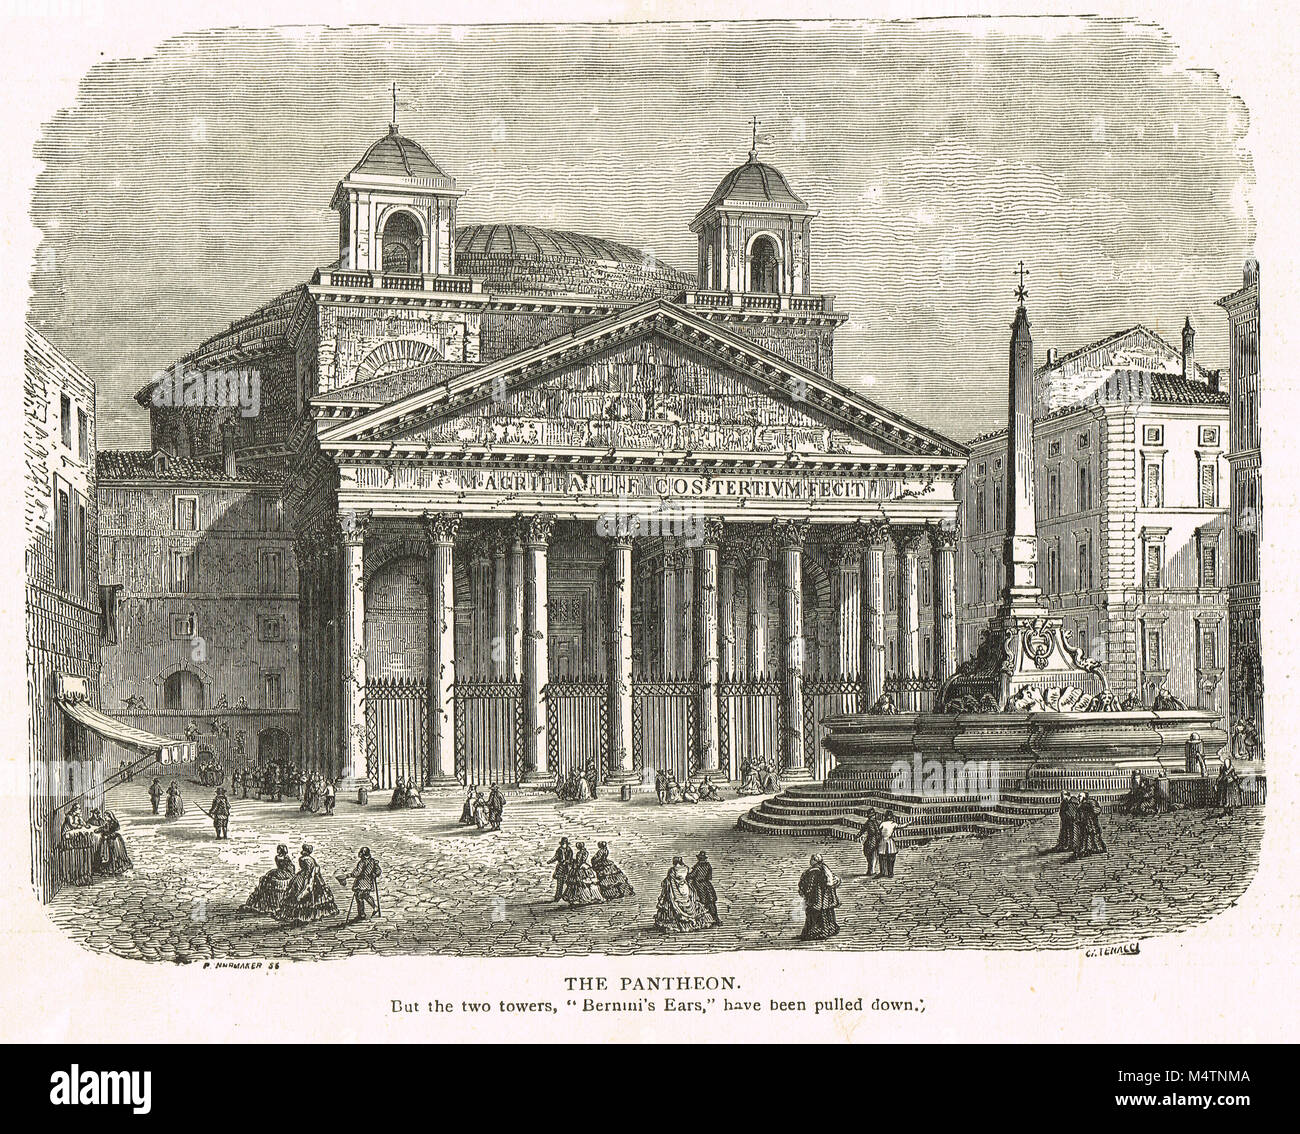 The Pantheon, Rome showing the twin bell towers added in the 17th century and removed in the late 19th. - Stock Image